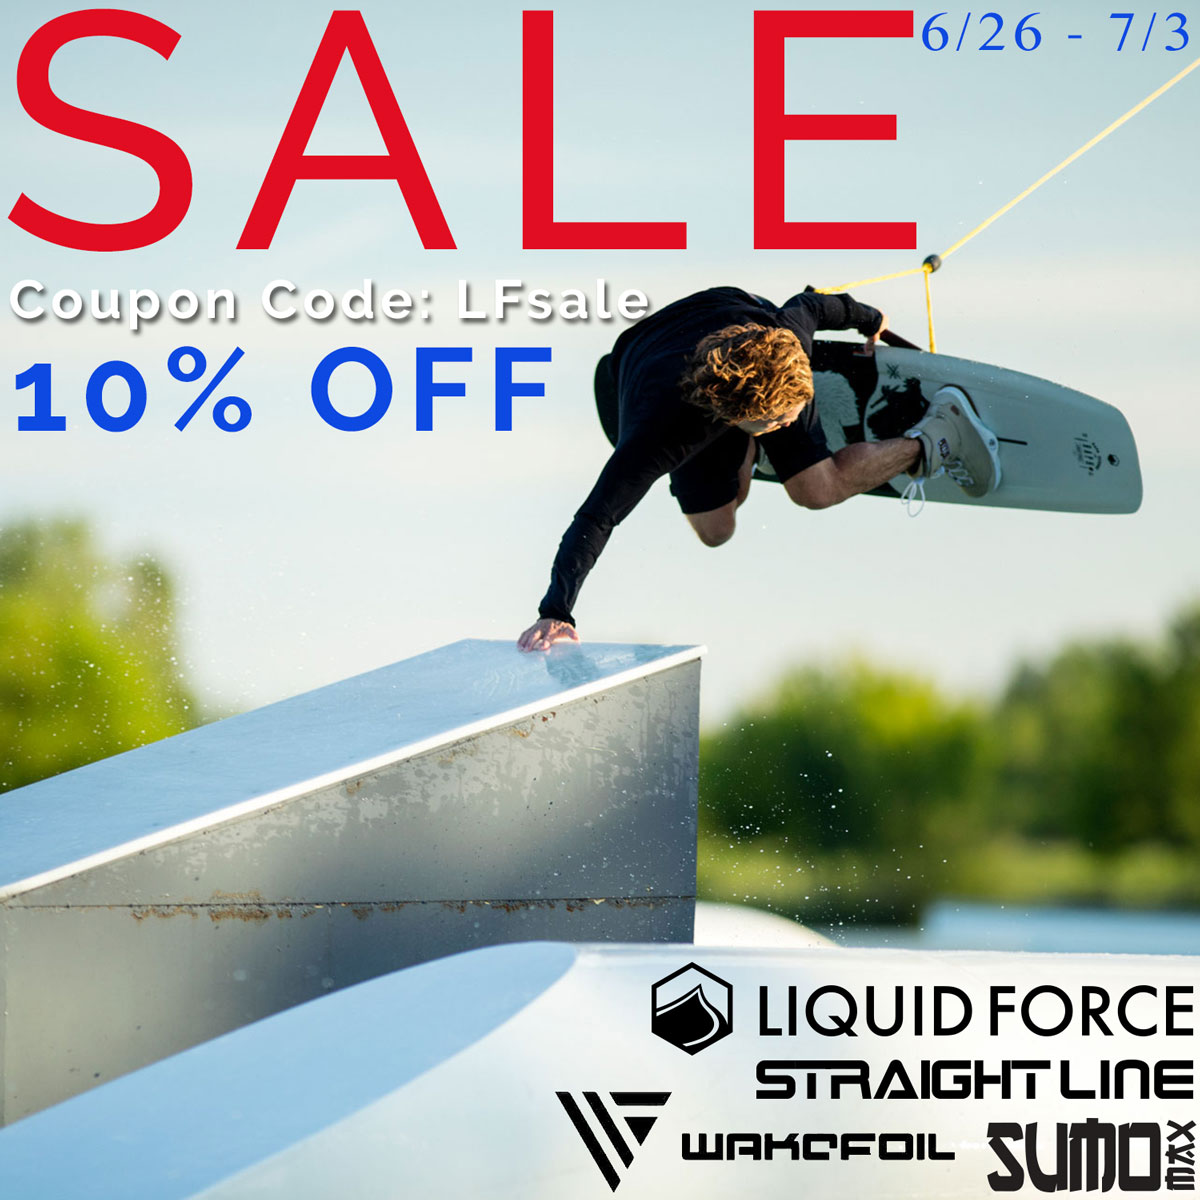 Sale on Liquid Force, Straight Line, SUMO, and The WAKEFOIL